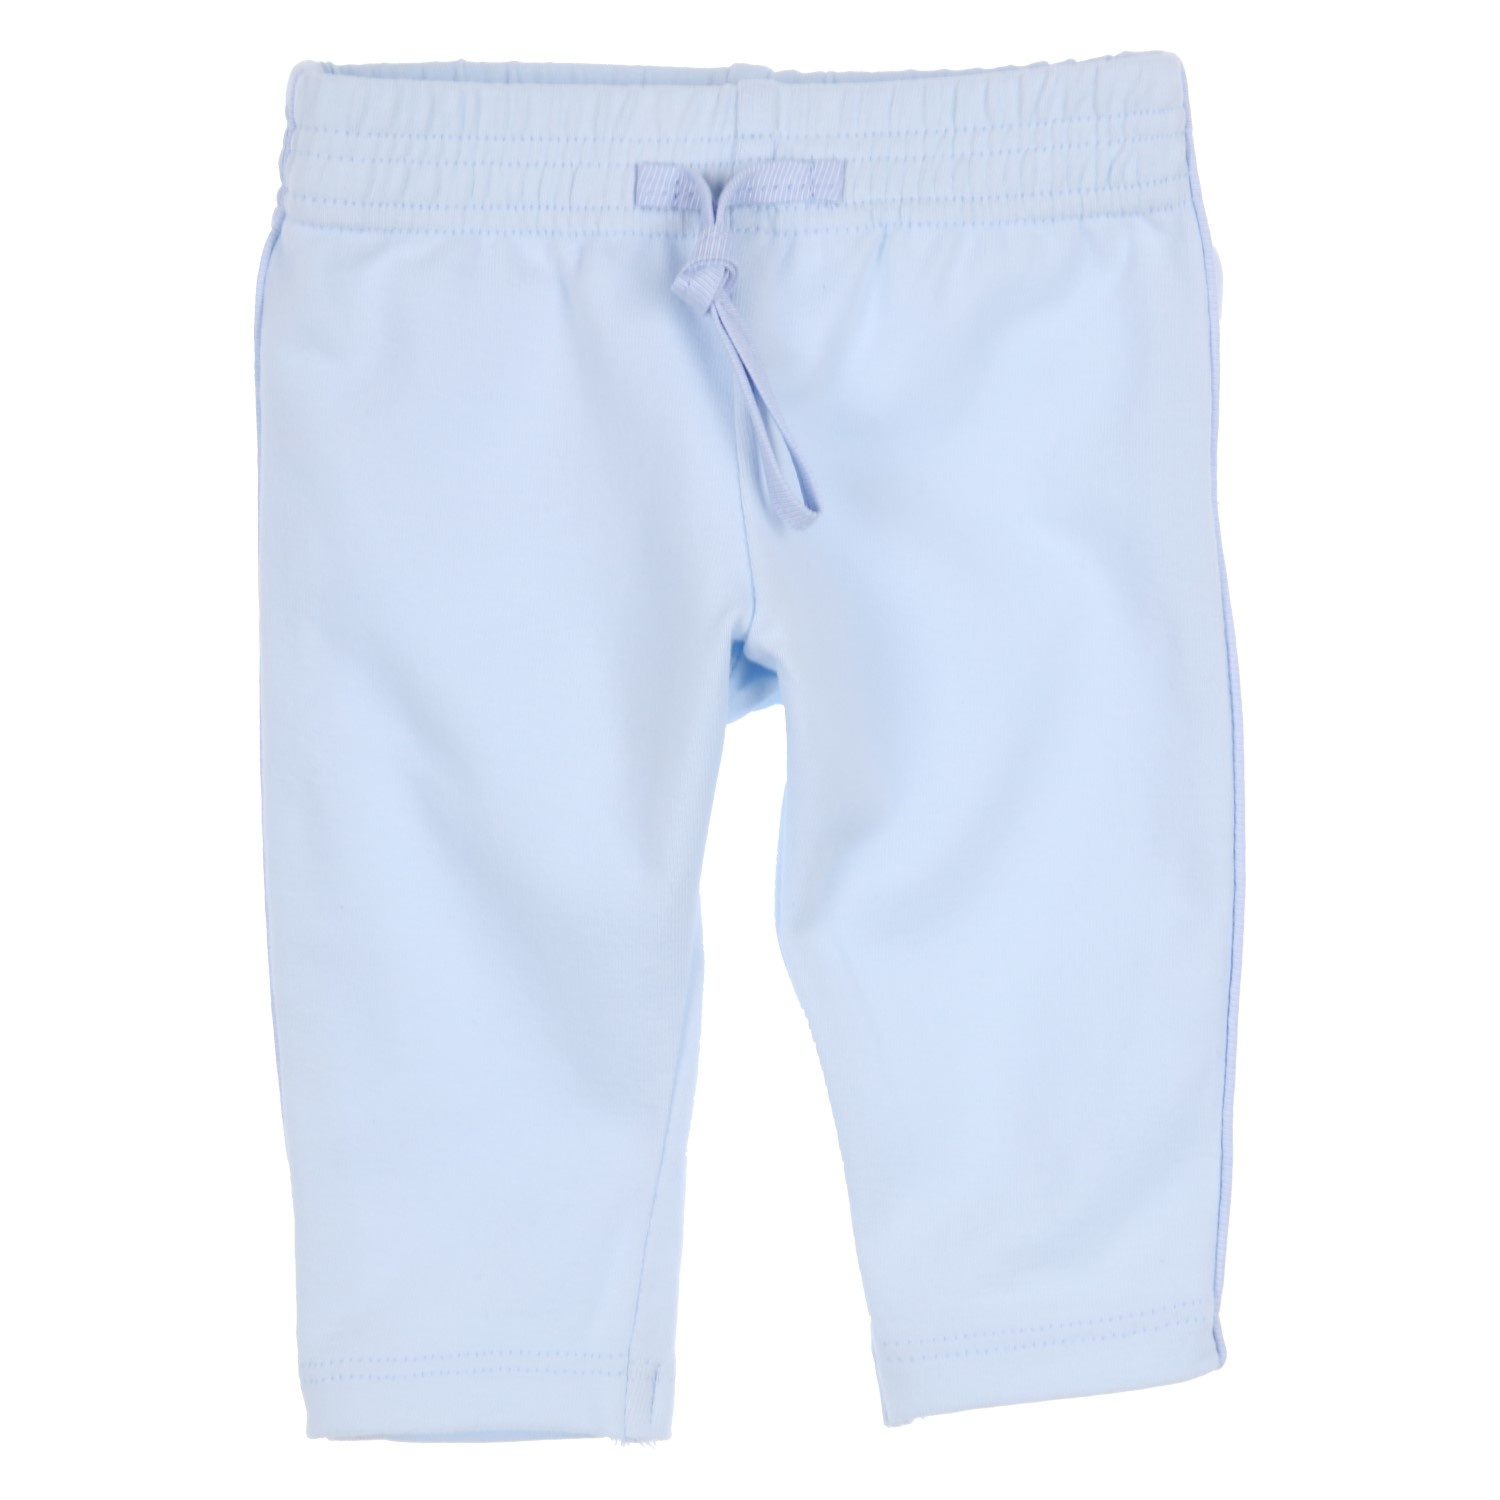 Gymp Gymp Blue Trousers - 1750